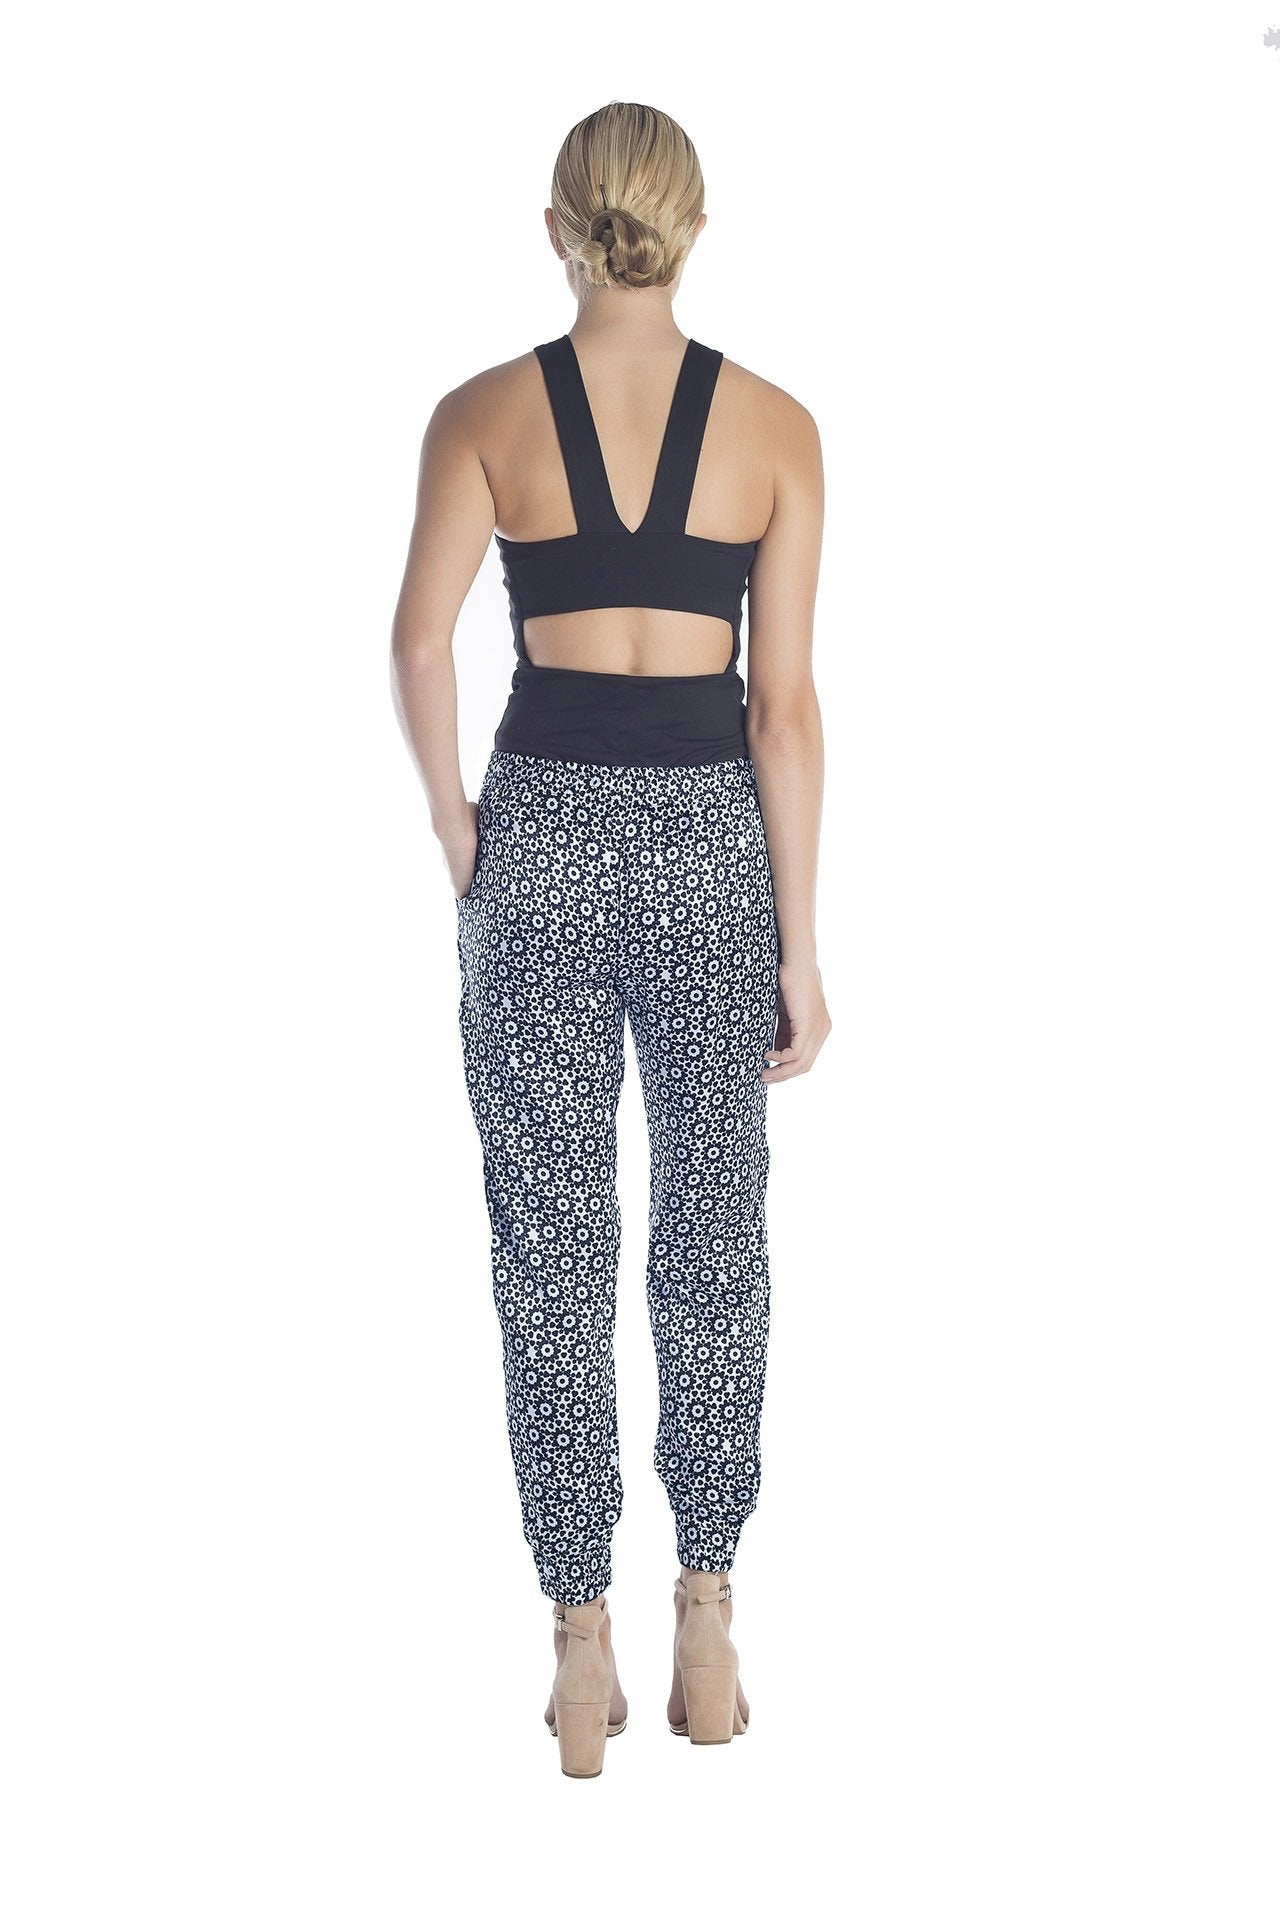 Back view of womens dressy track pants of a black and white mantra designed by artist John Zoller